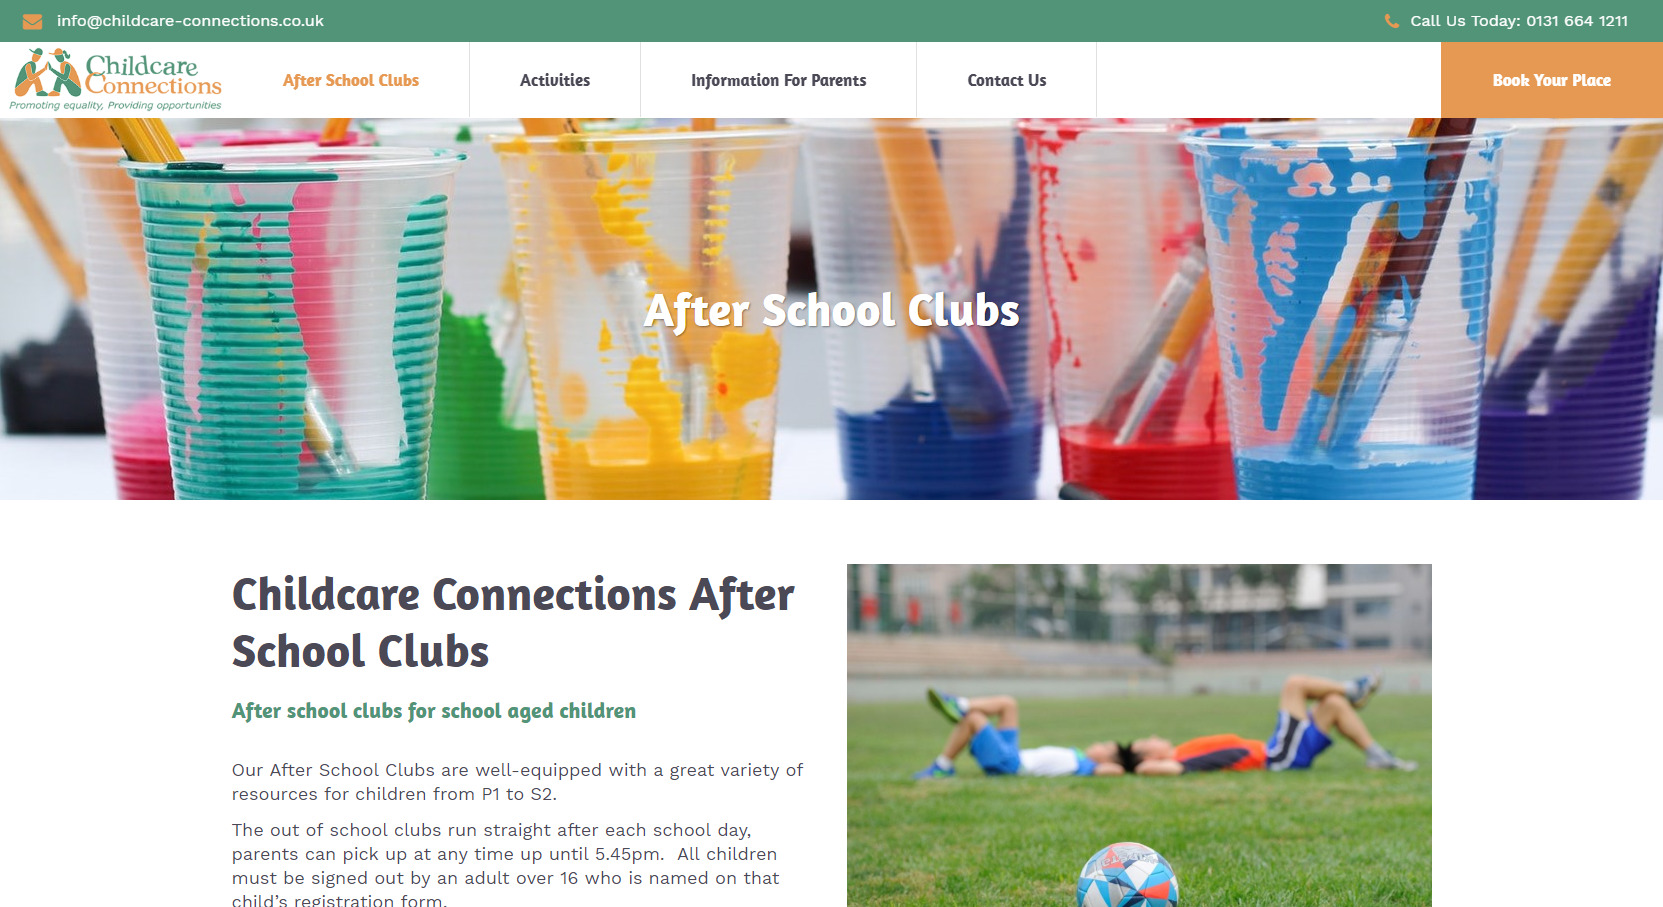 Childcare Connections website design